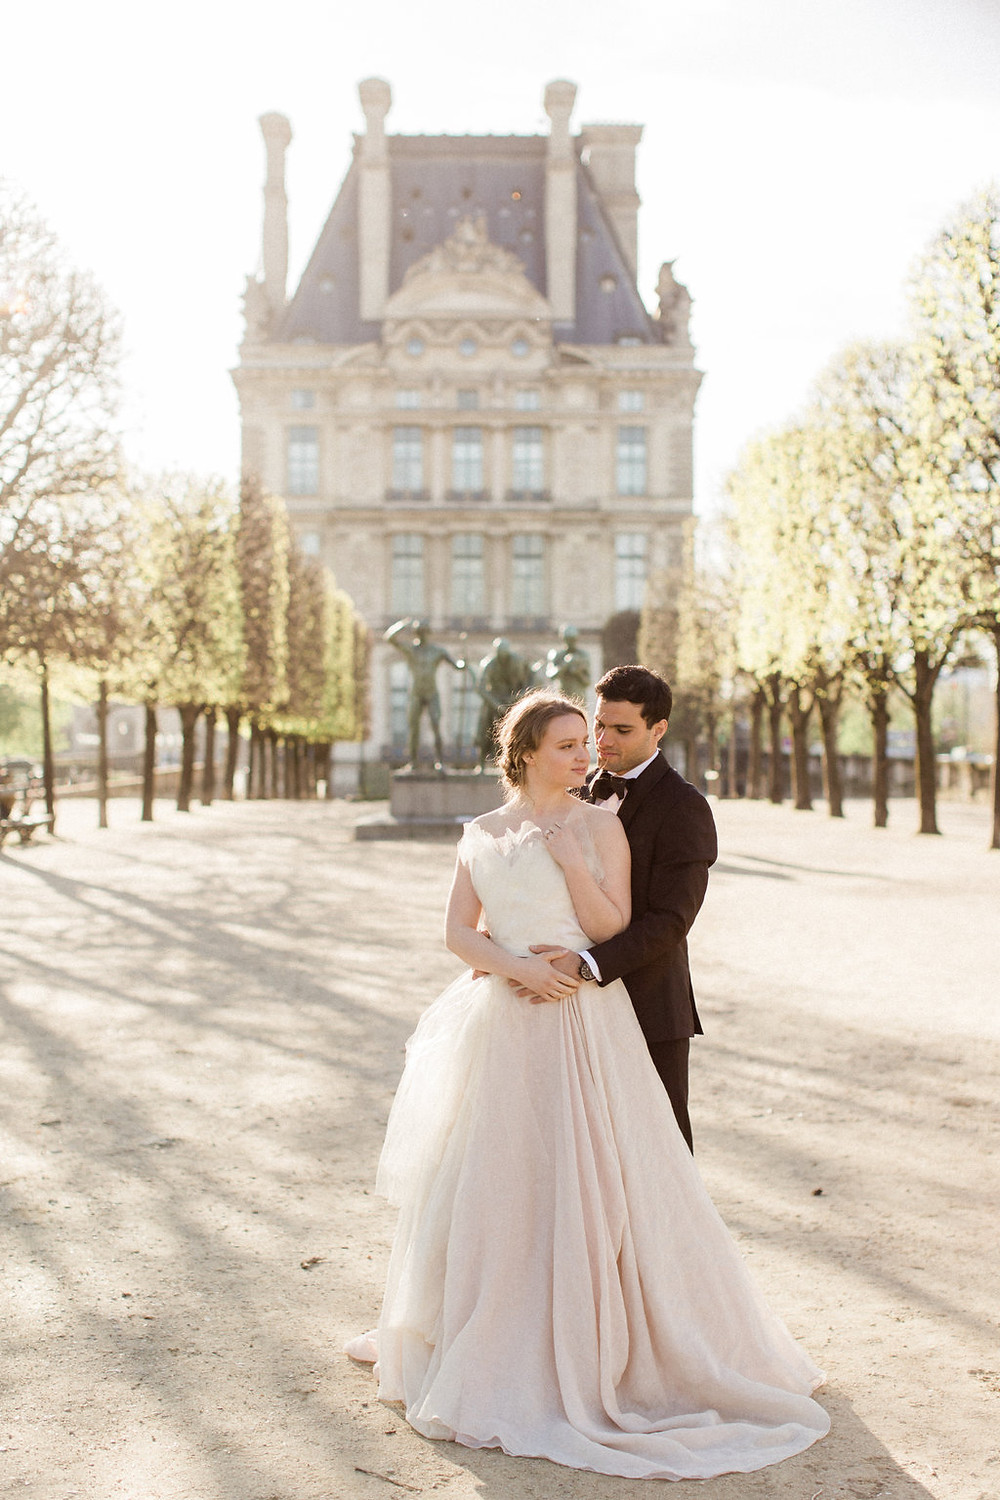 Tulleries Garden Wedding